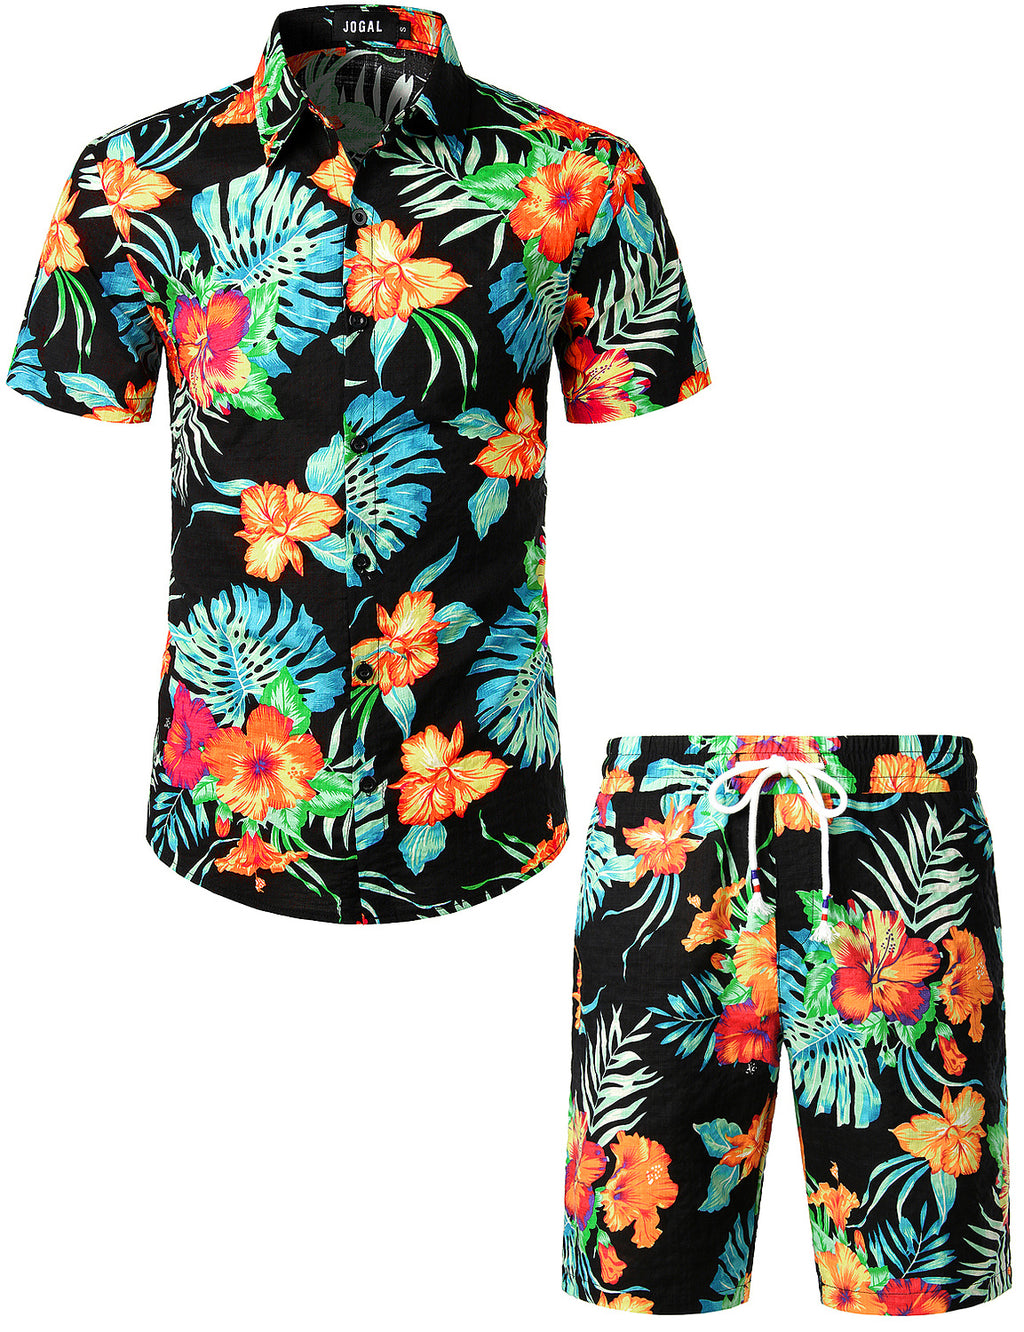 JOGAL Men's Flower Casual Button Down Short Sleeve Hawaiian Shirt Suits